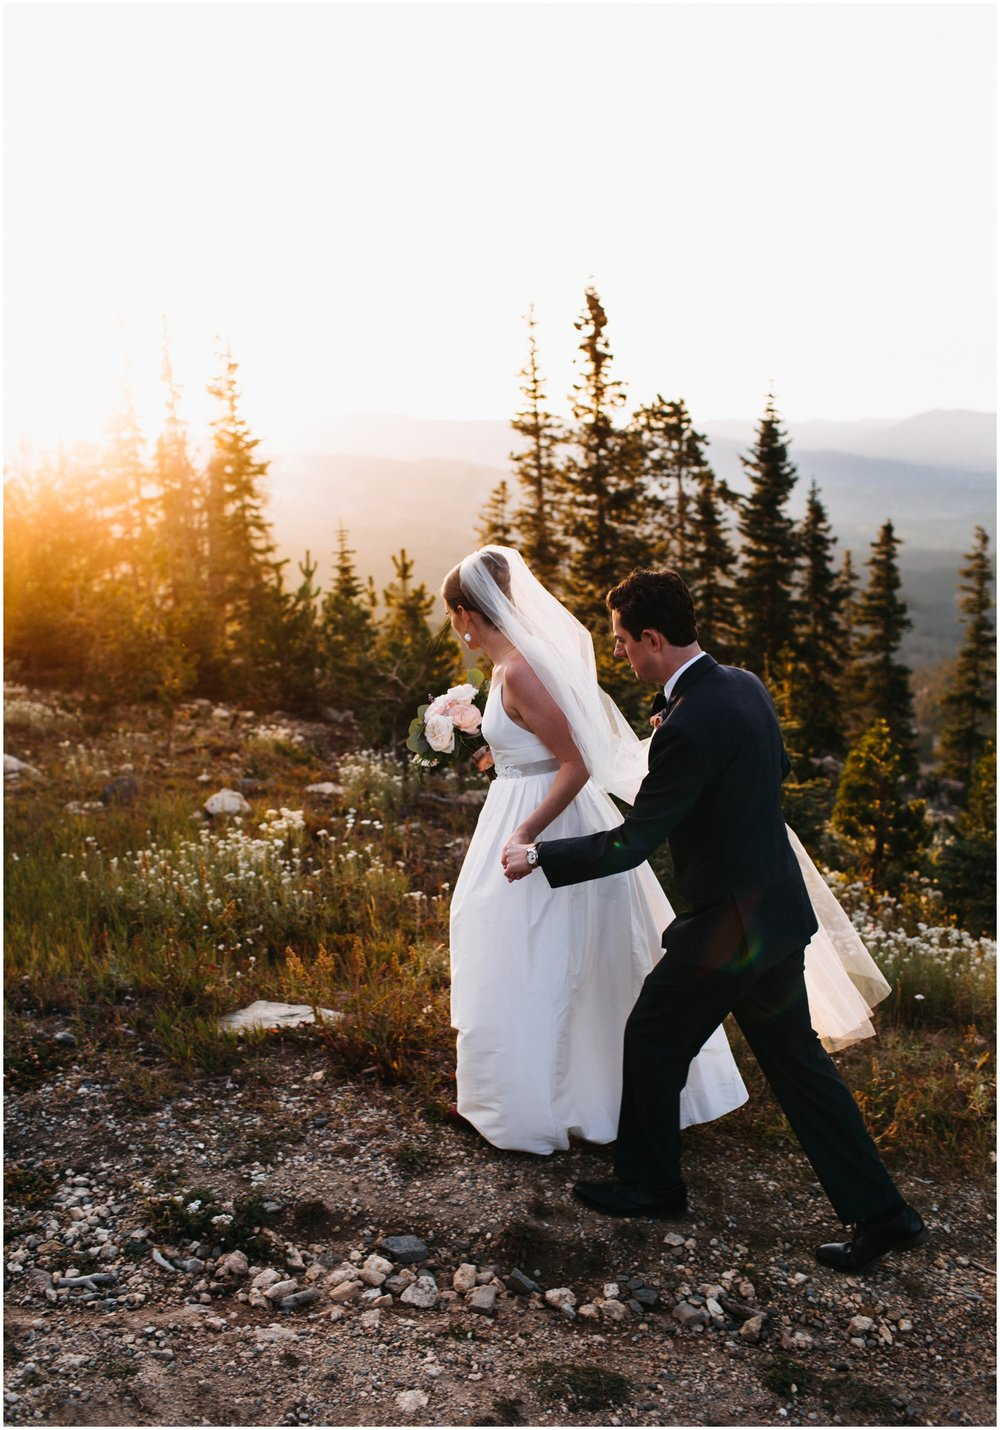 NadegeandJoe_elegant_winter_park_wedding_lodge_at_sunspot_mountain_taylor_powers_0215.jpg